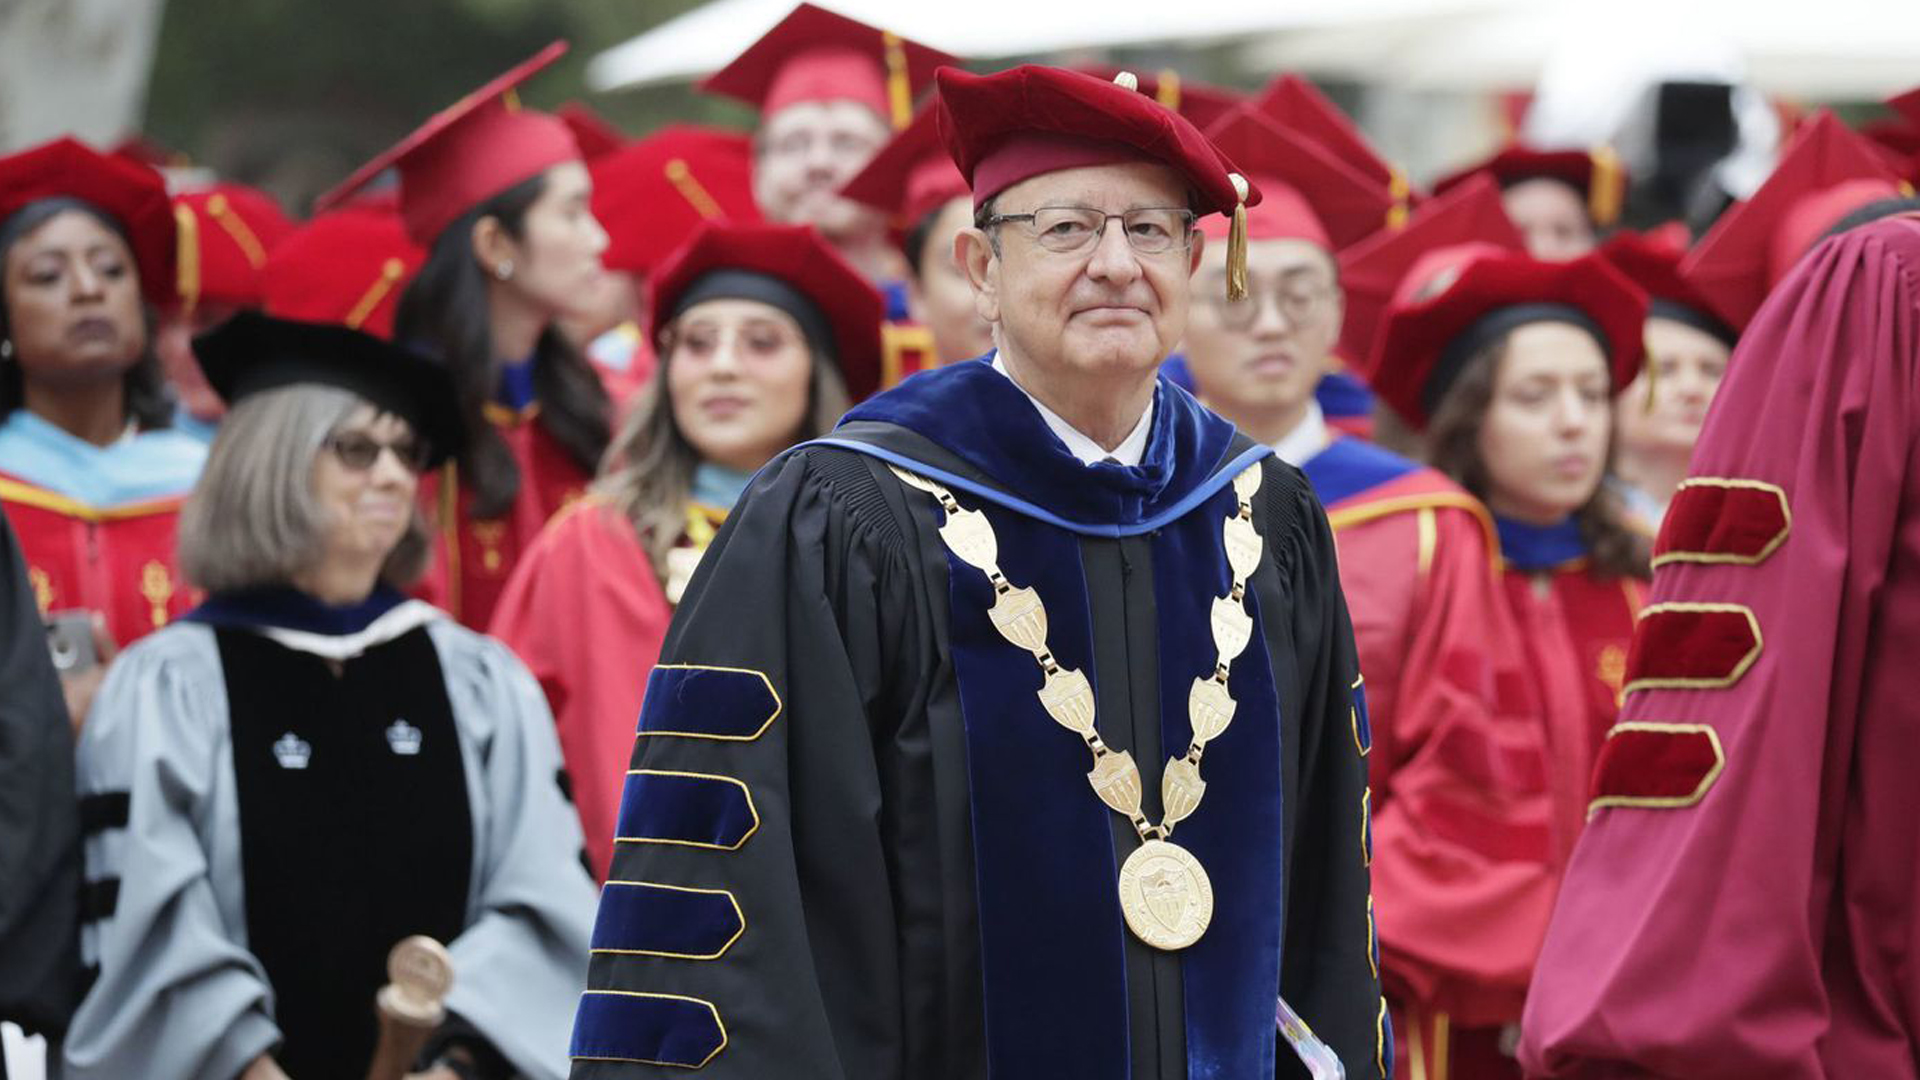 USC President C. L. Max Nikias is seen taking part in a commencement ceremony in this undated photo. (Credit: Irfan Khan / Los Angeles Times)